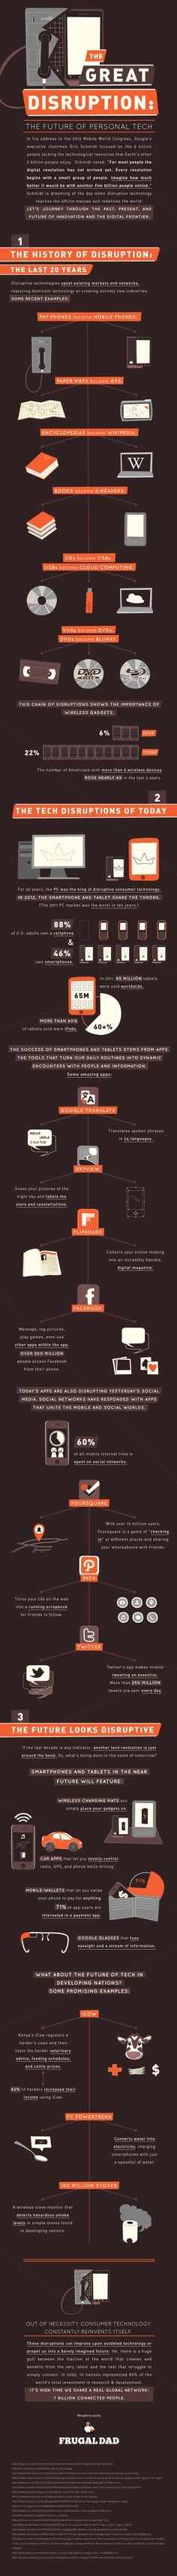 How Personal Tech Has Changed Our Lives | Infographic